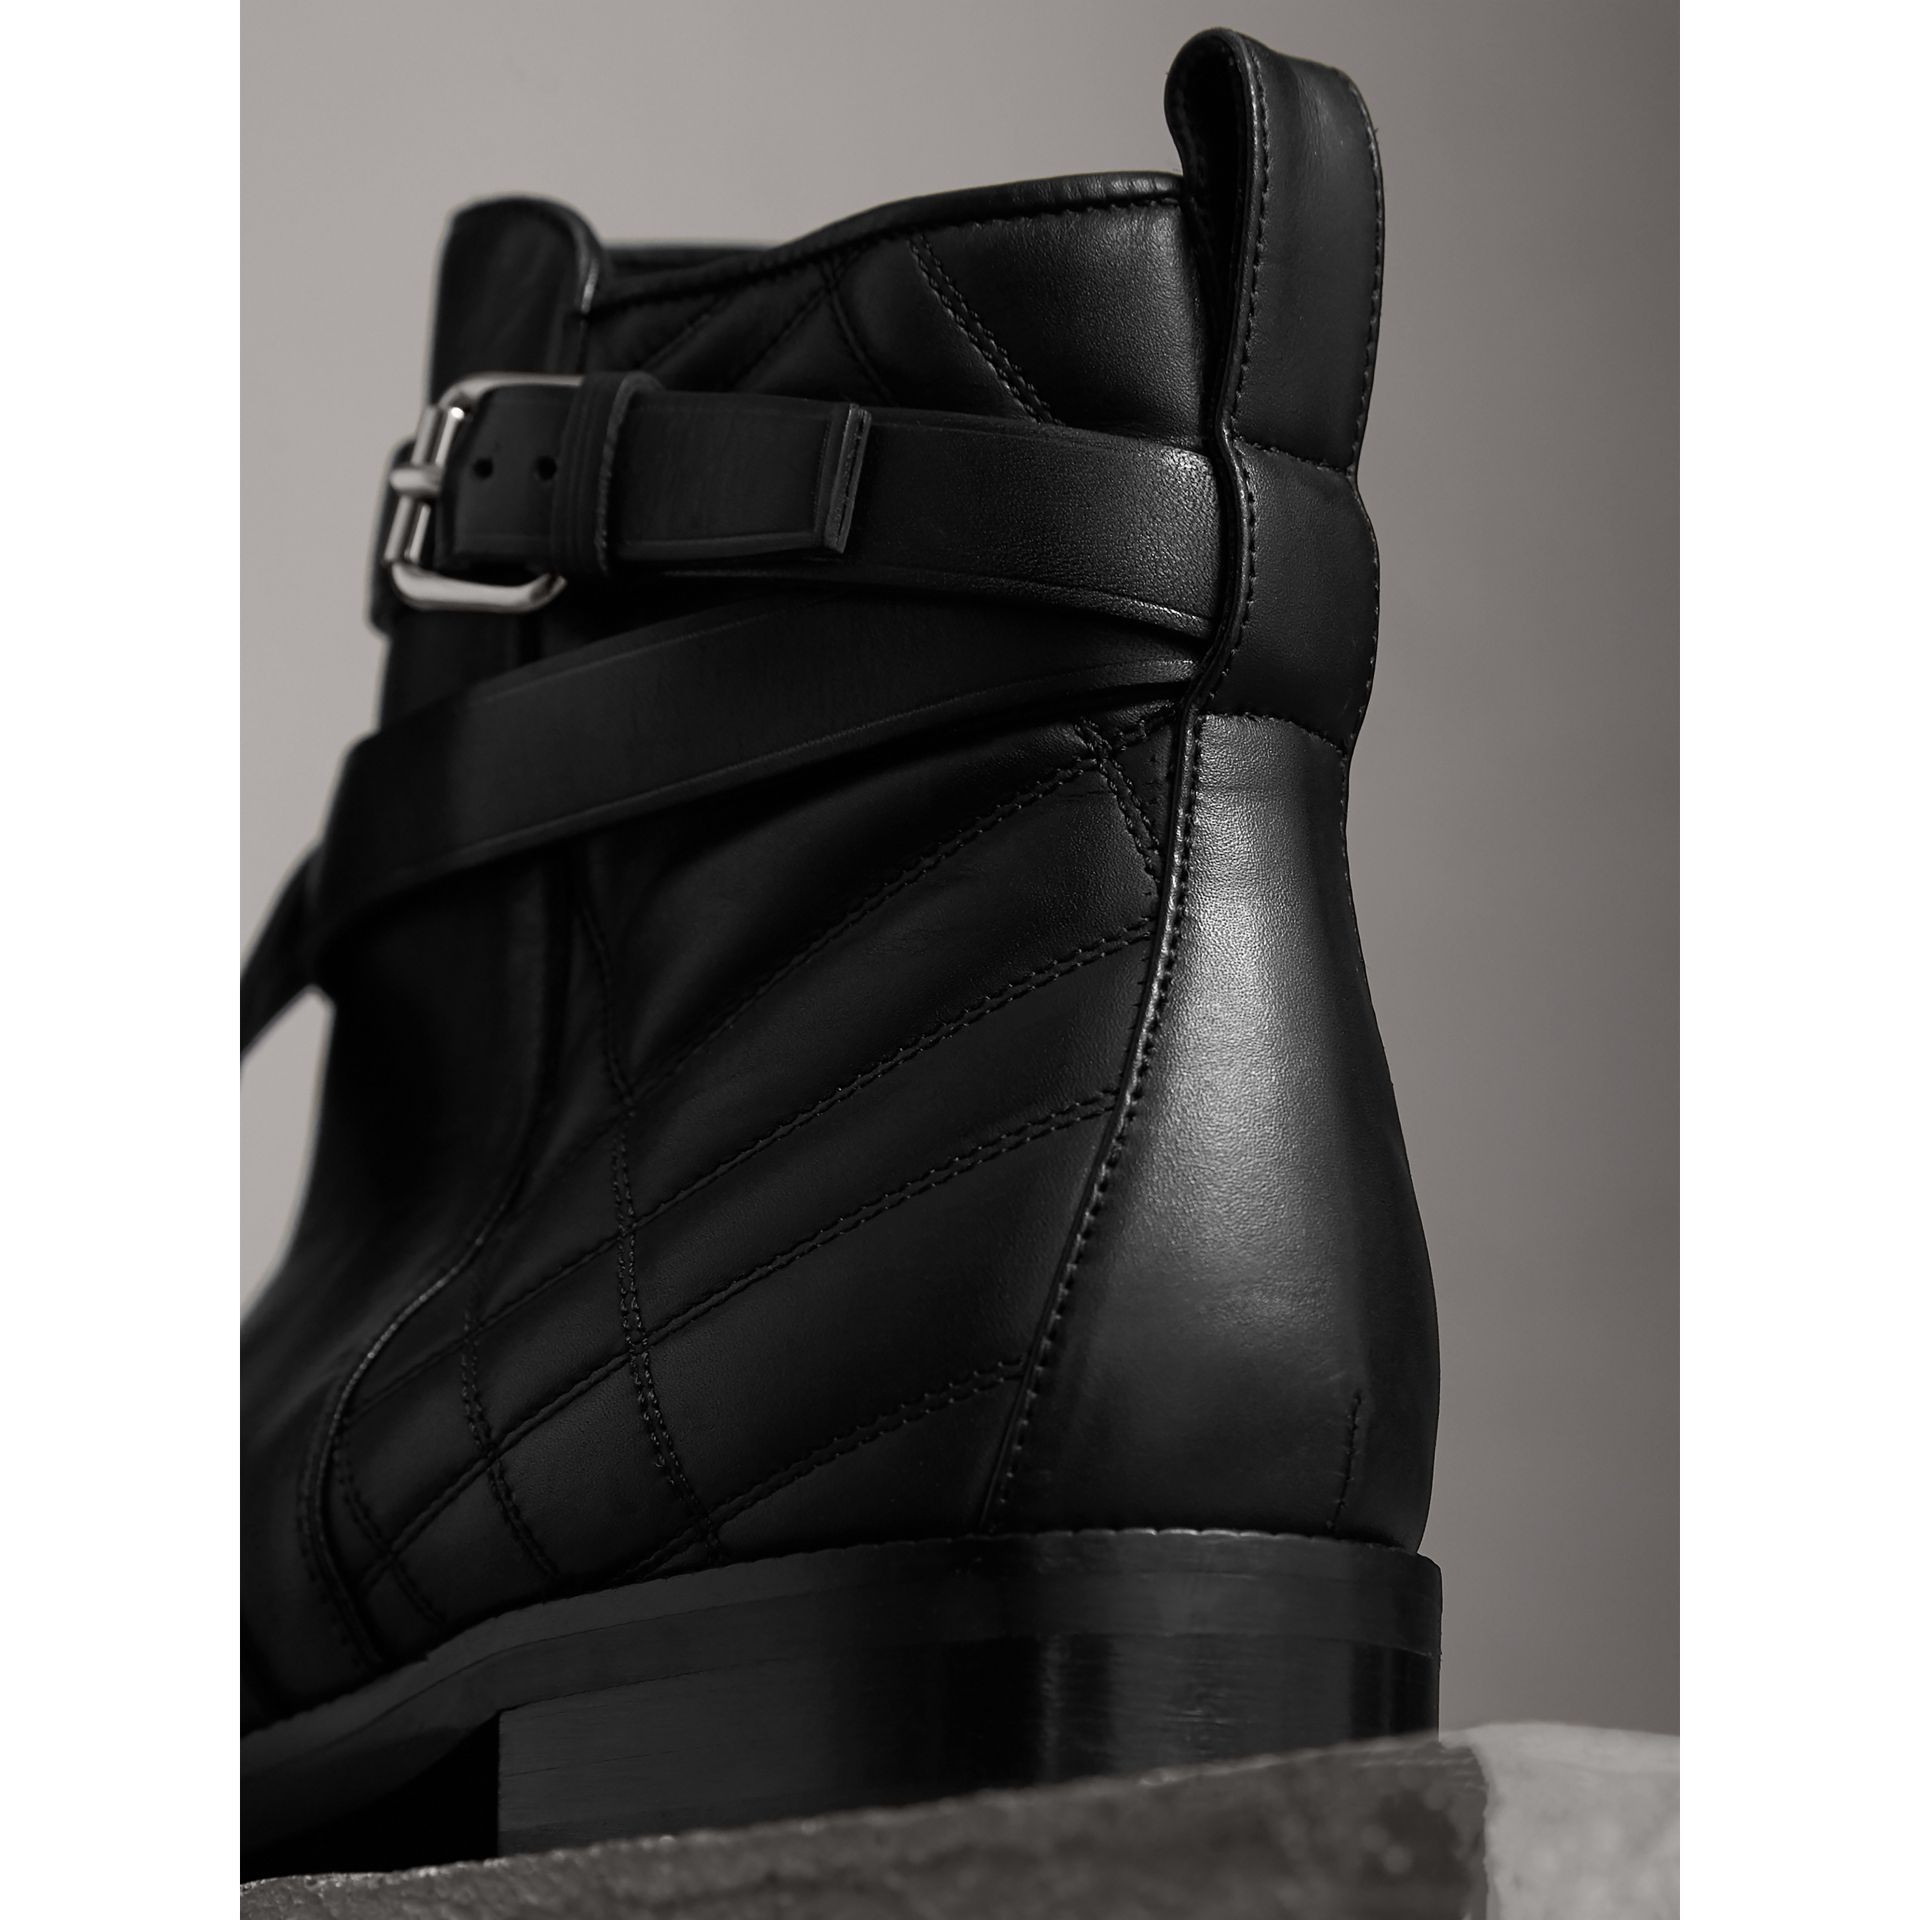 Bottines en cuir matelassé avec sangle (Noir) - Femme | Burberry Canada - photo de la galerie 3